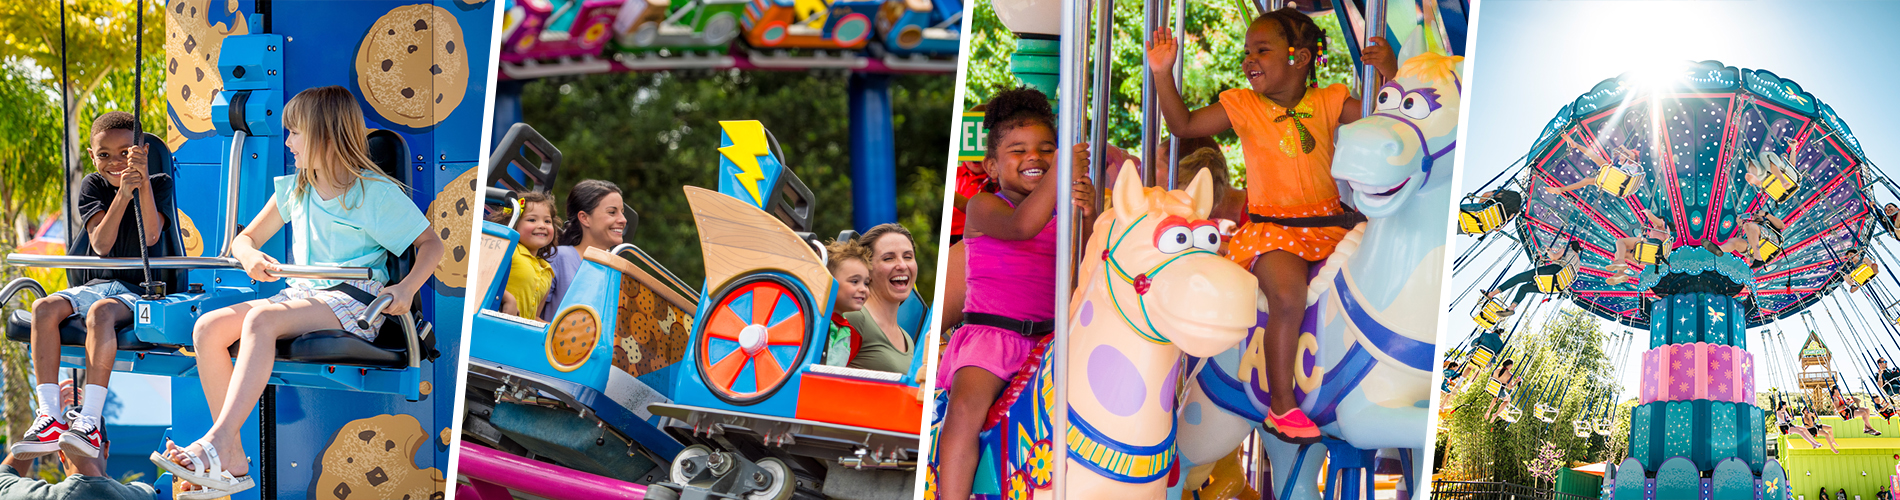 Family Friendly Rides at Sesame Place San Diego